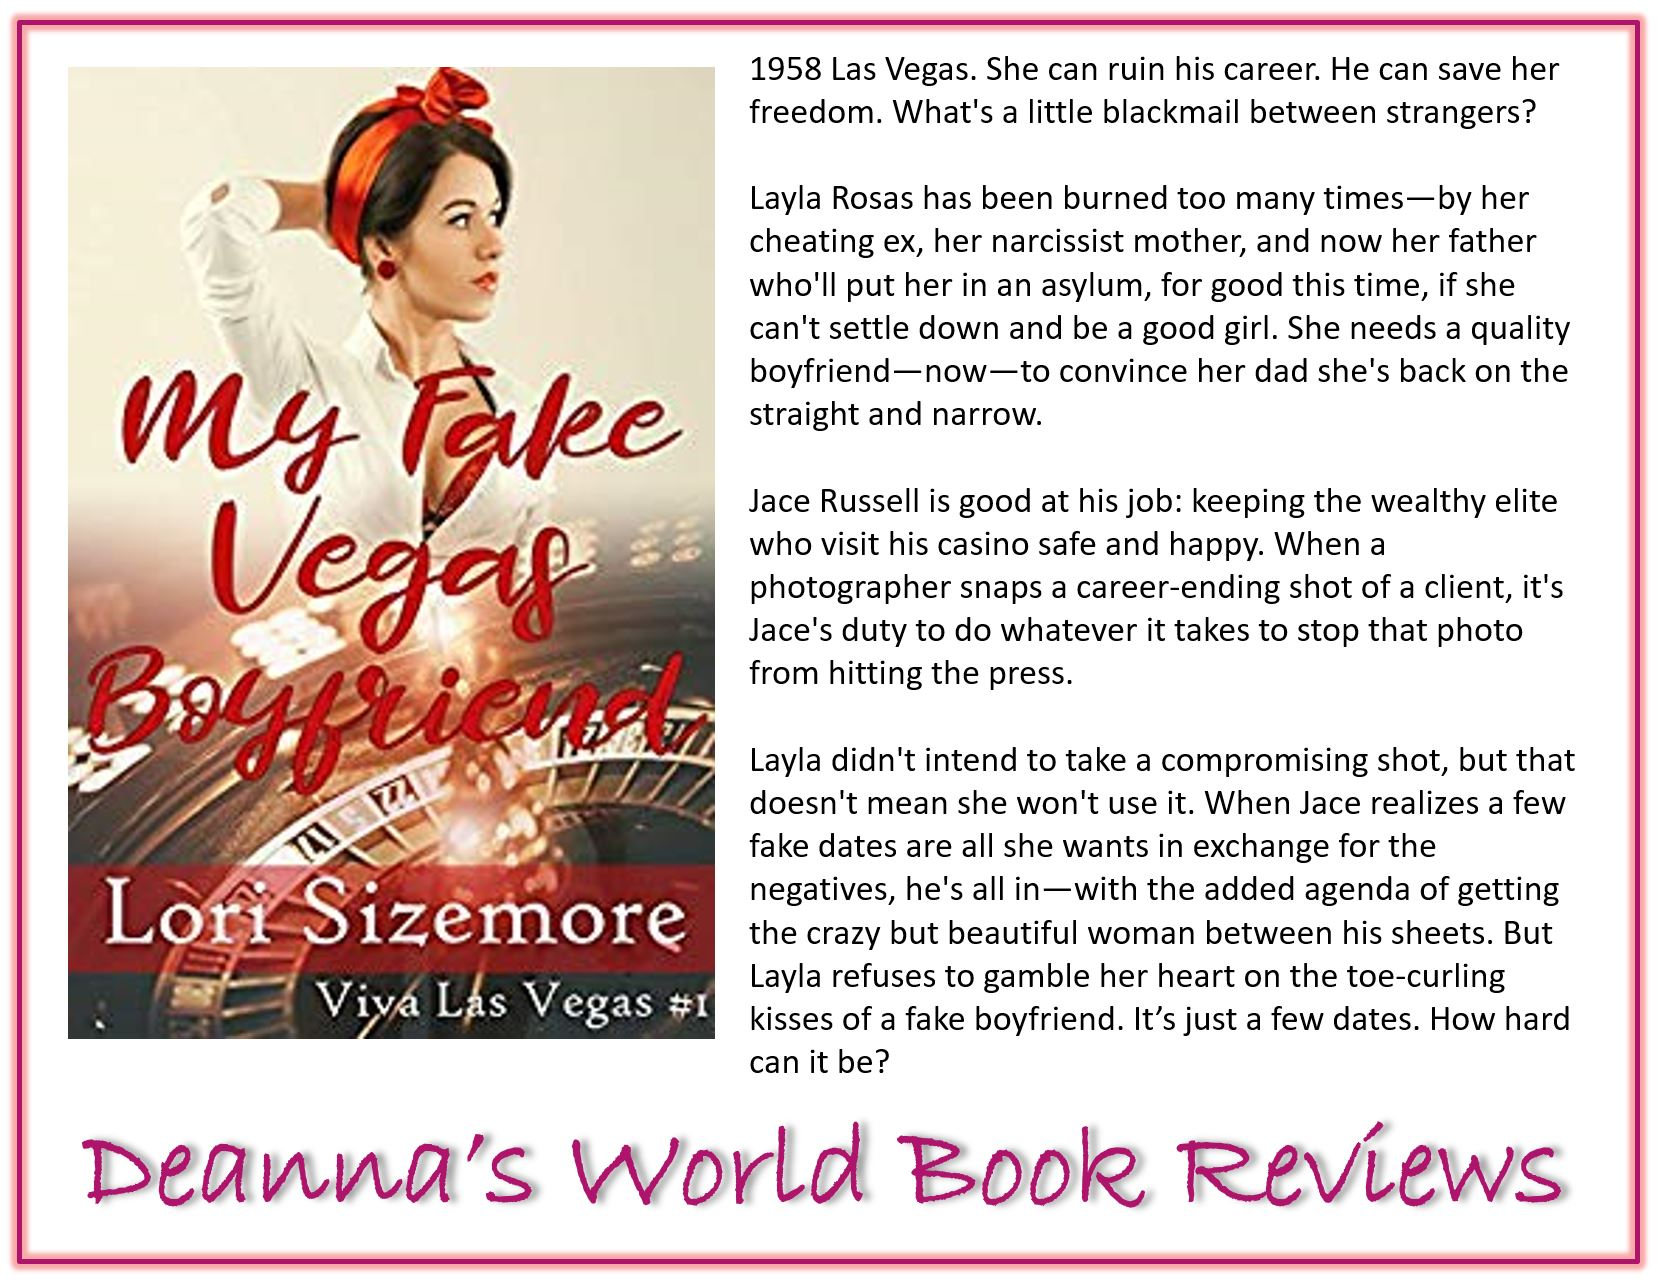 My Fake Vegas Boyfriend by Lori Sizemore blurb